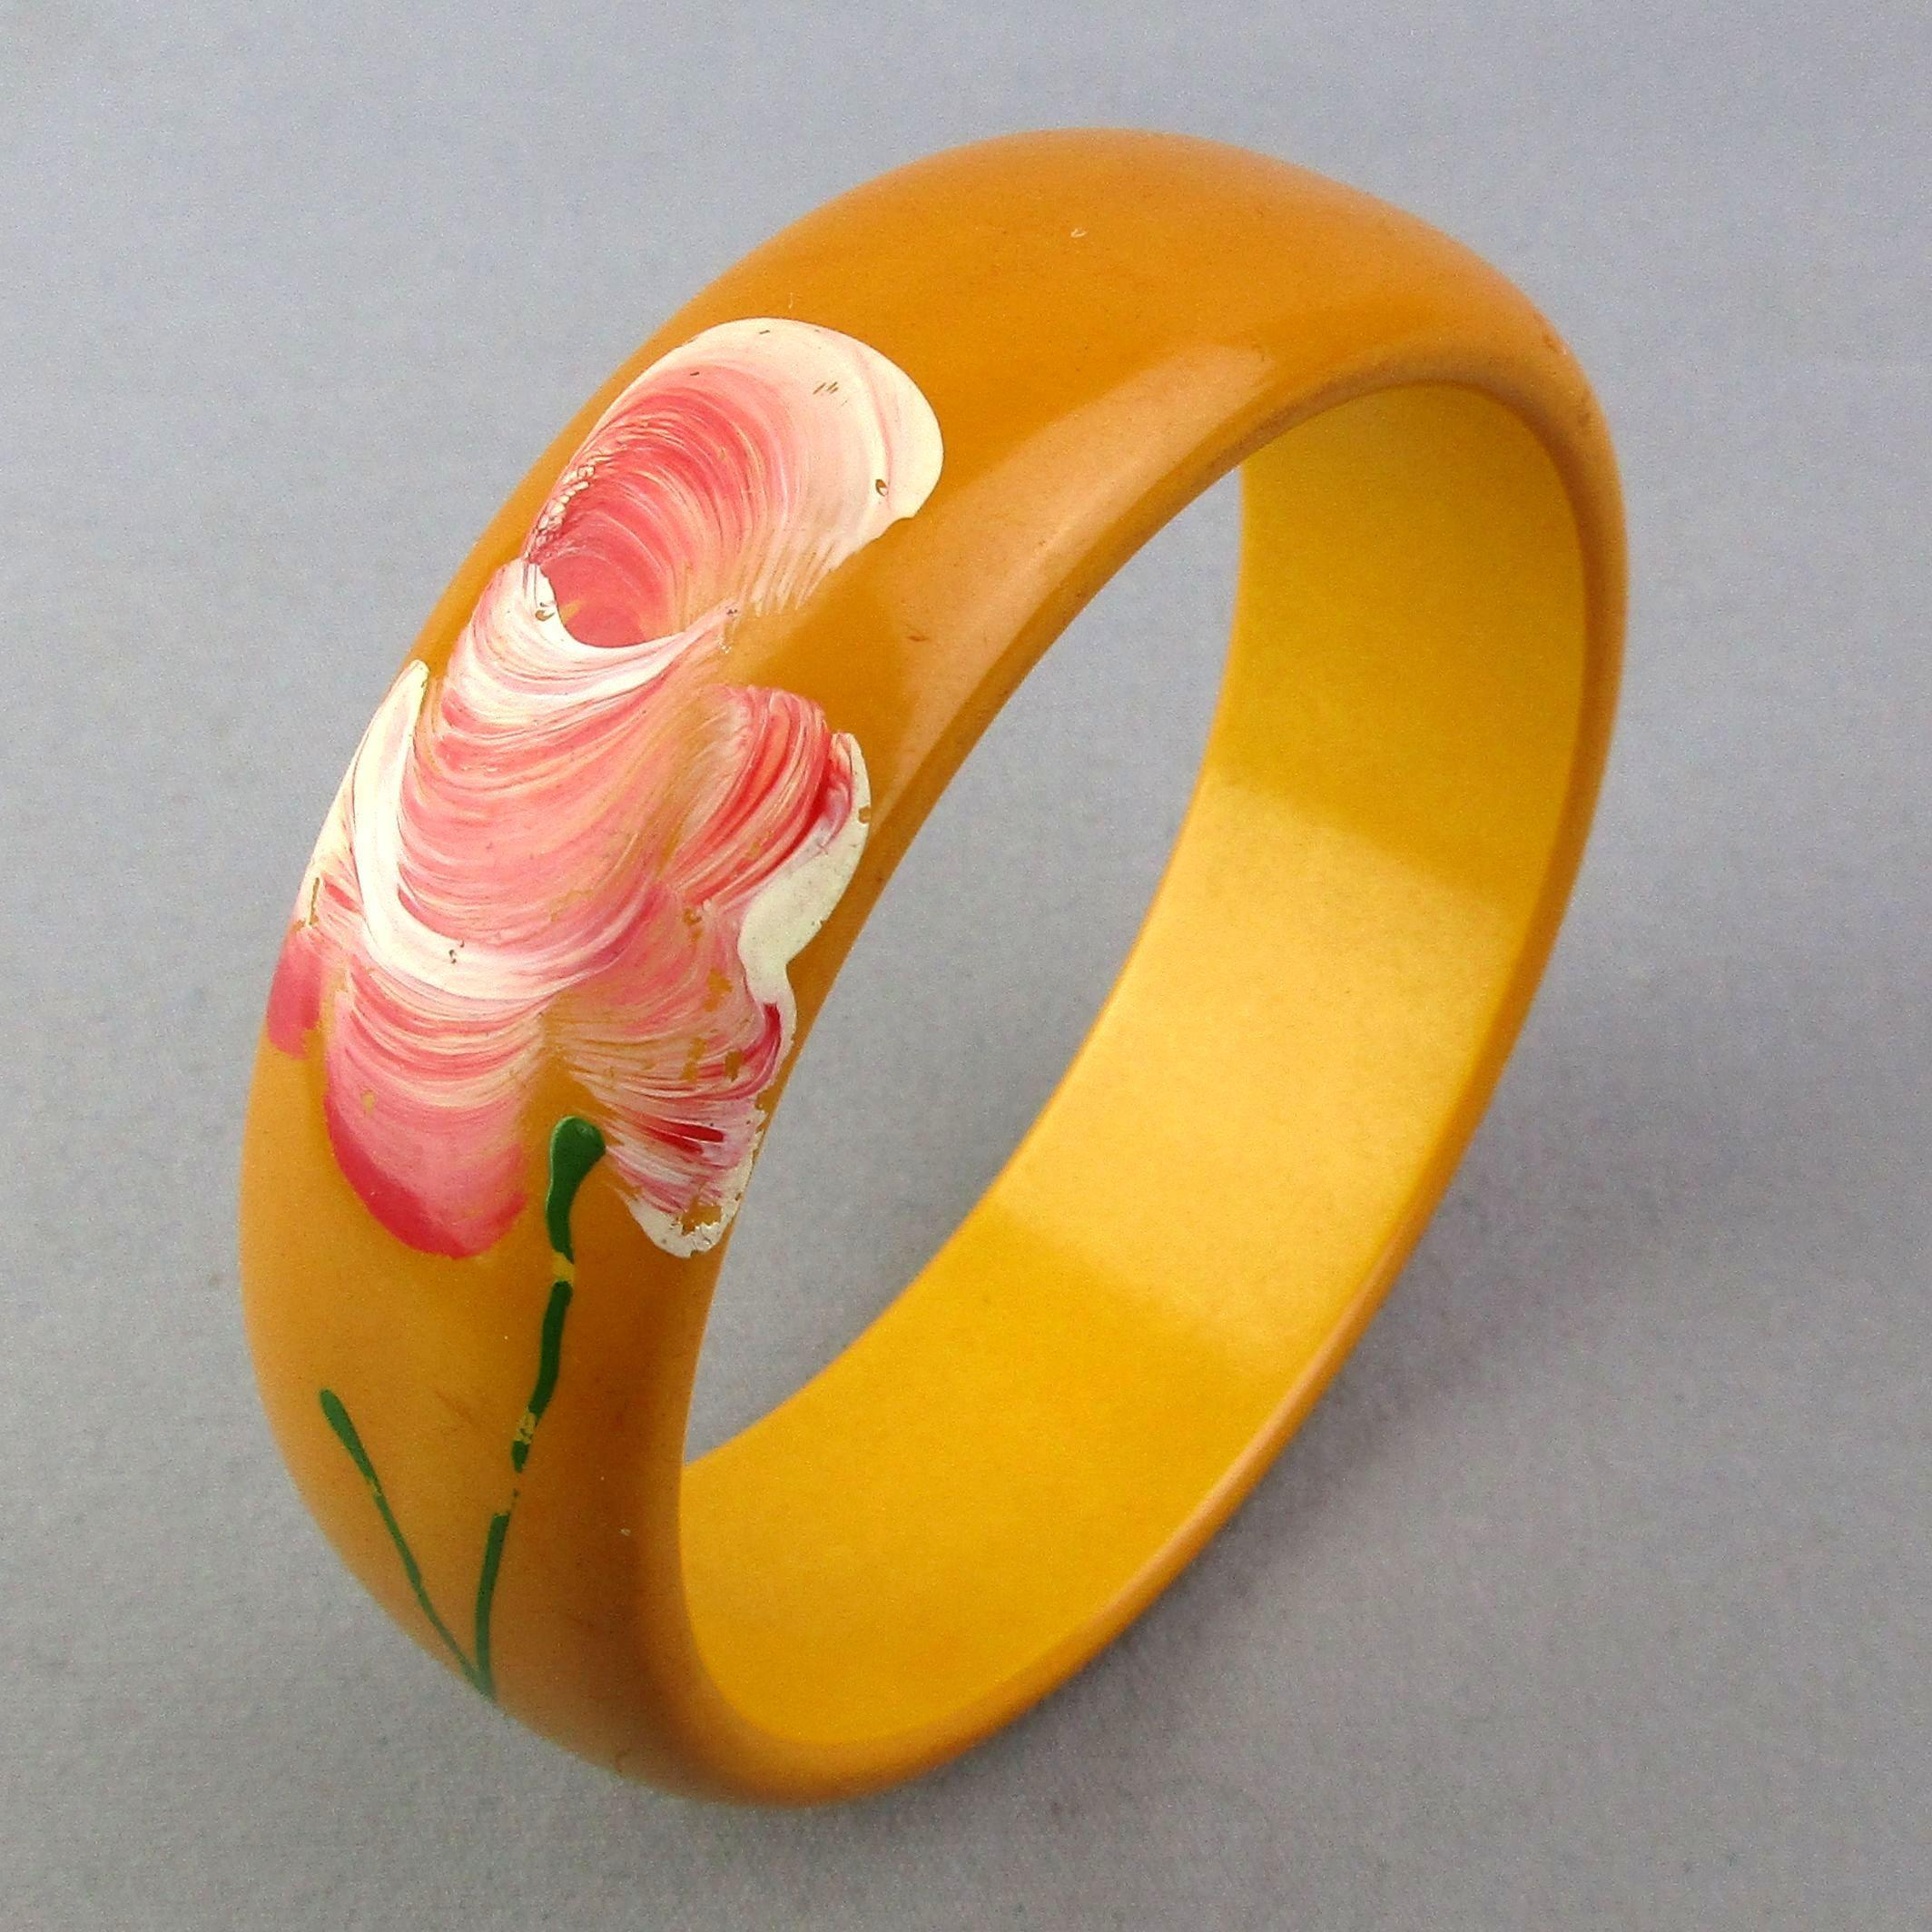 Vintage Bakelite Bangle Bracelet w/ Handpainted Flower